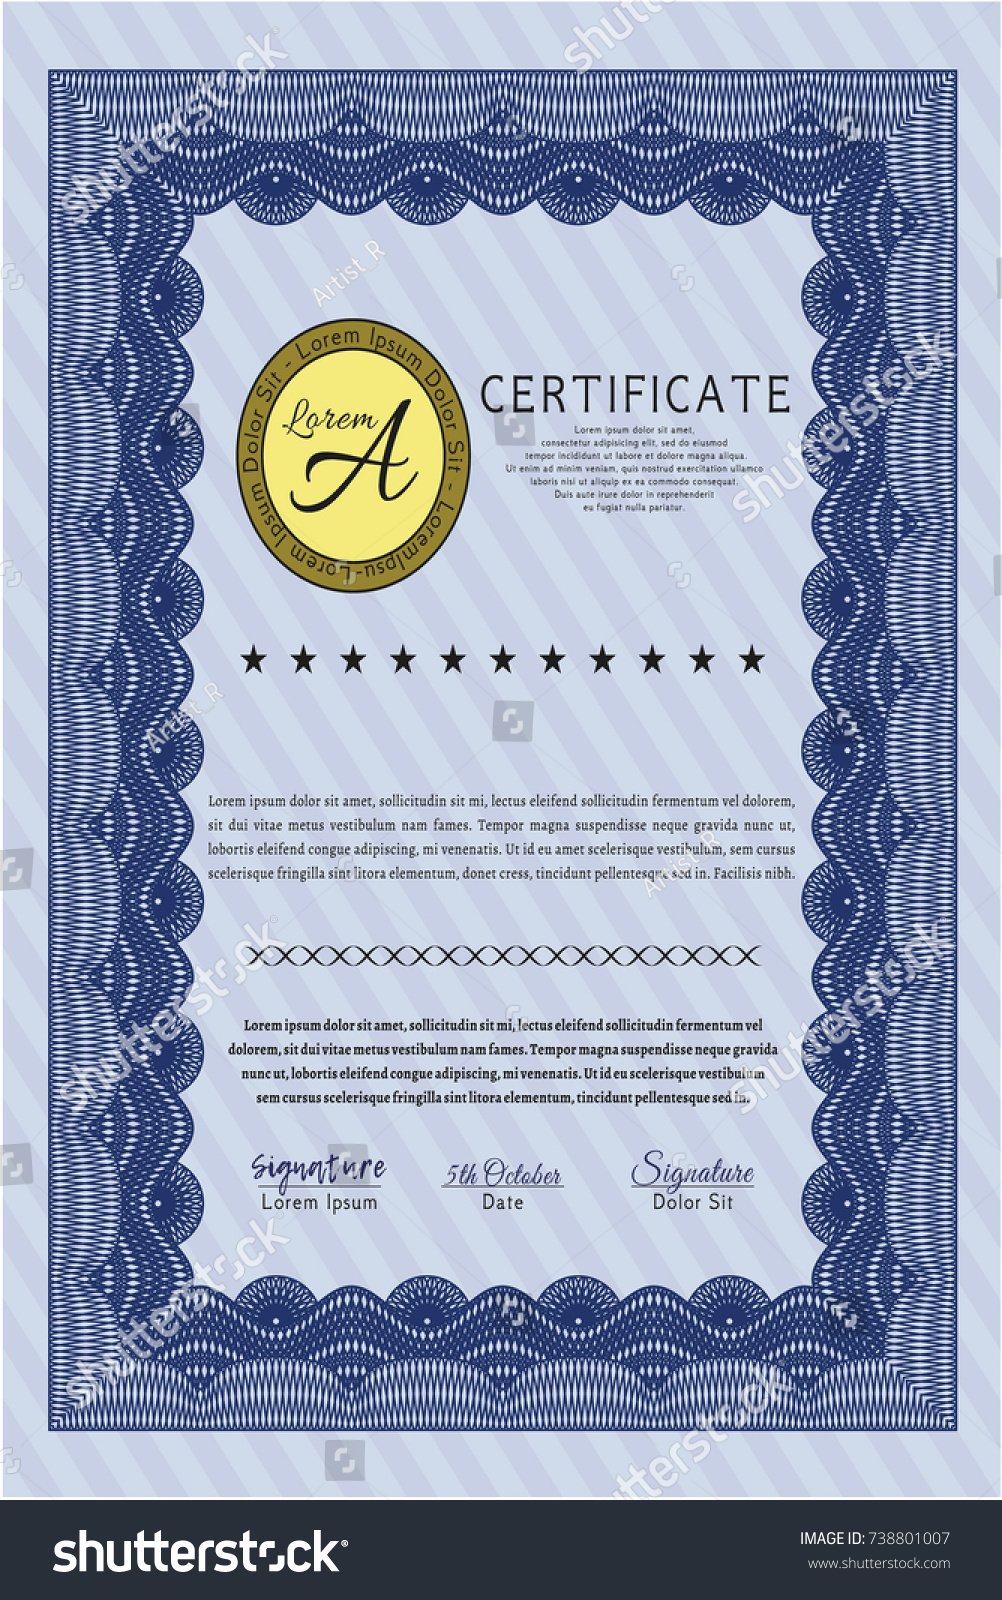 Vector stock certificate template choice image certificate vector stock certificate template gallery certificate design and nice stock certificates basic meeting agenda template same yadclub Images